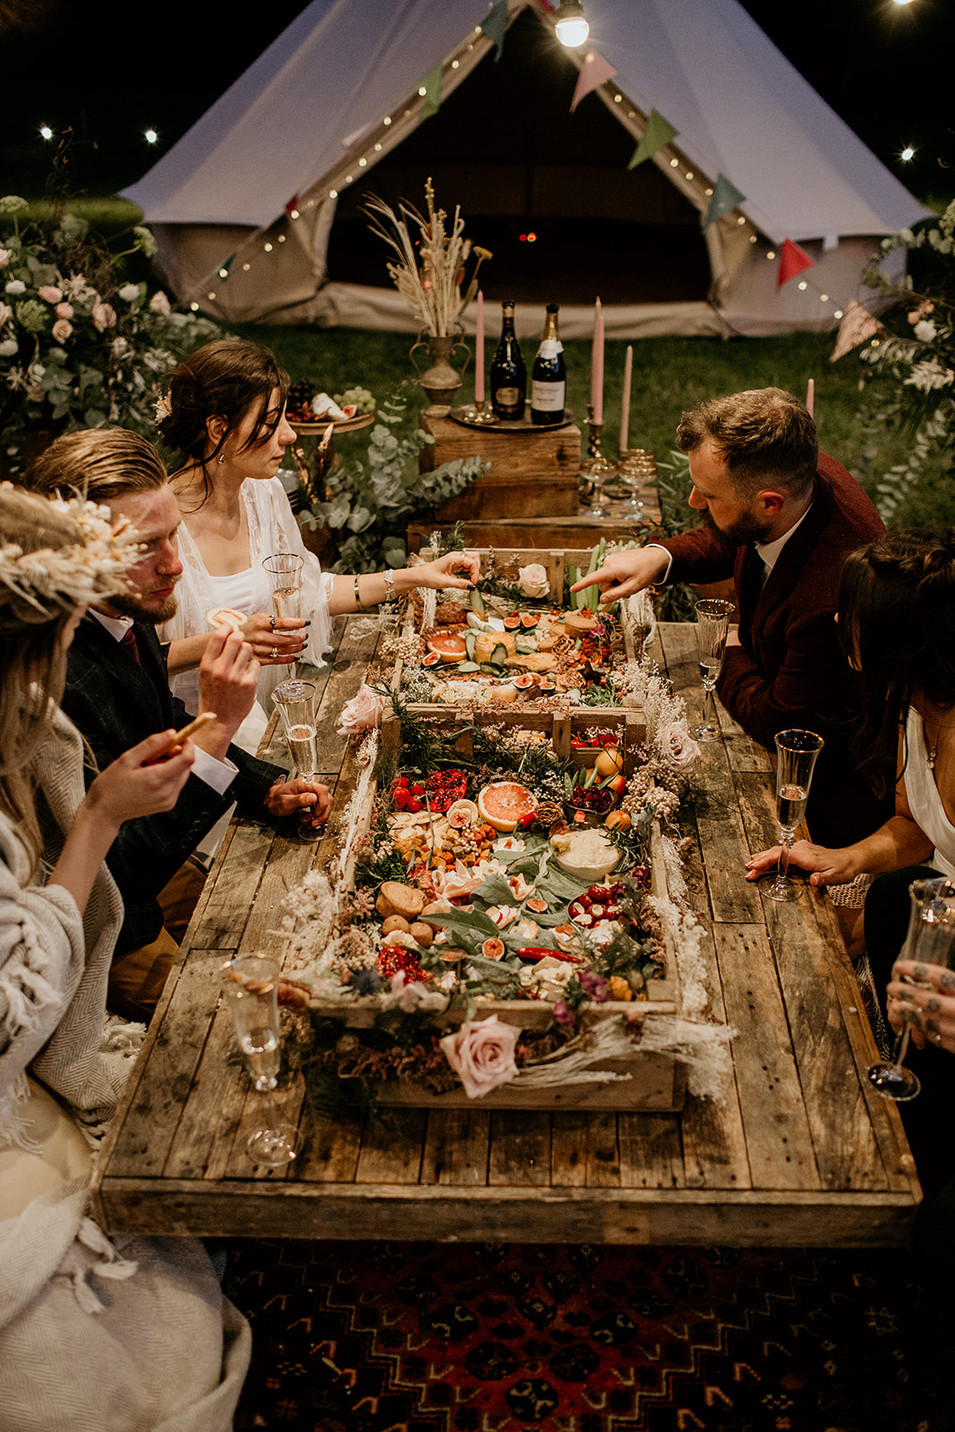 Grazing tables are such a lovely way to share with close friends and family!